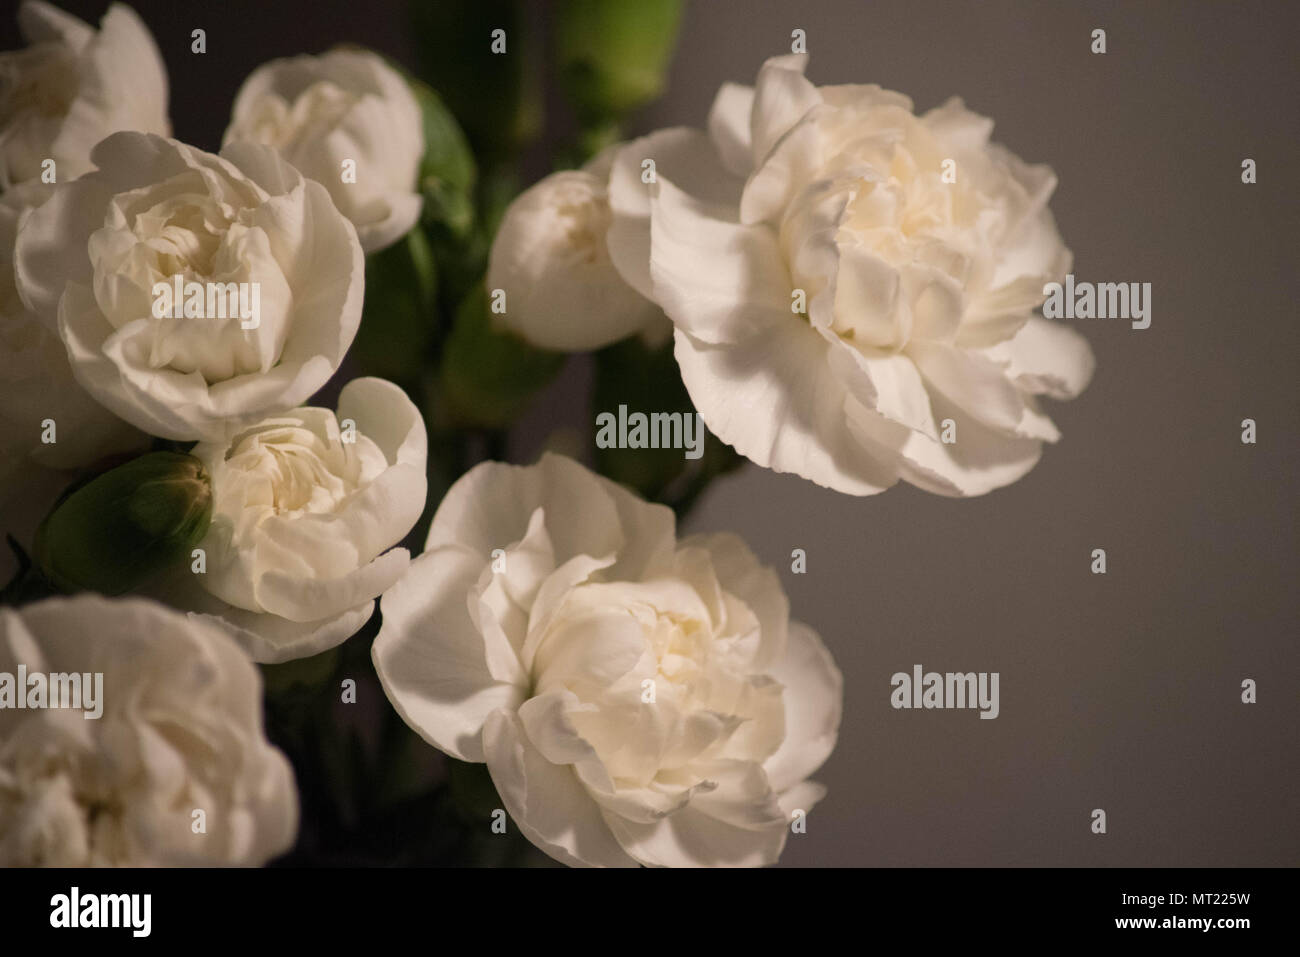 Carnations Flowers Stock Photos Carnations Flowers Stock Images